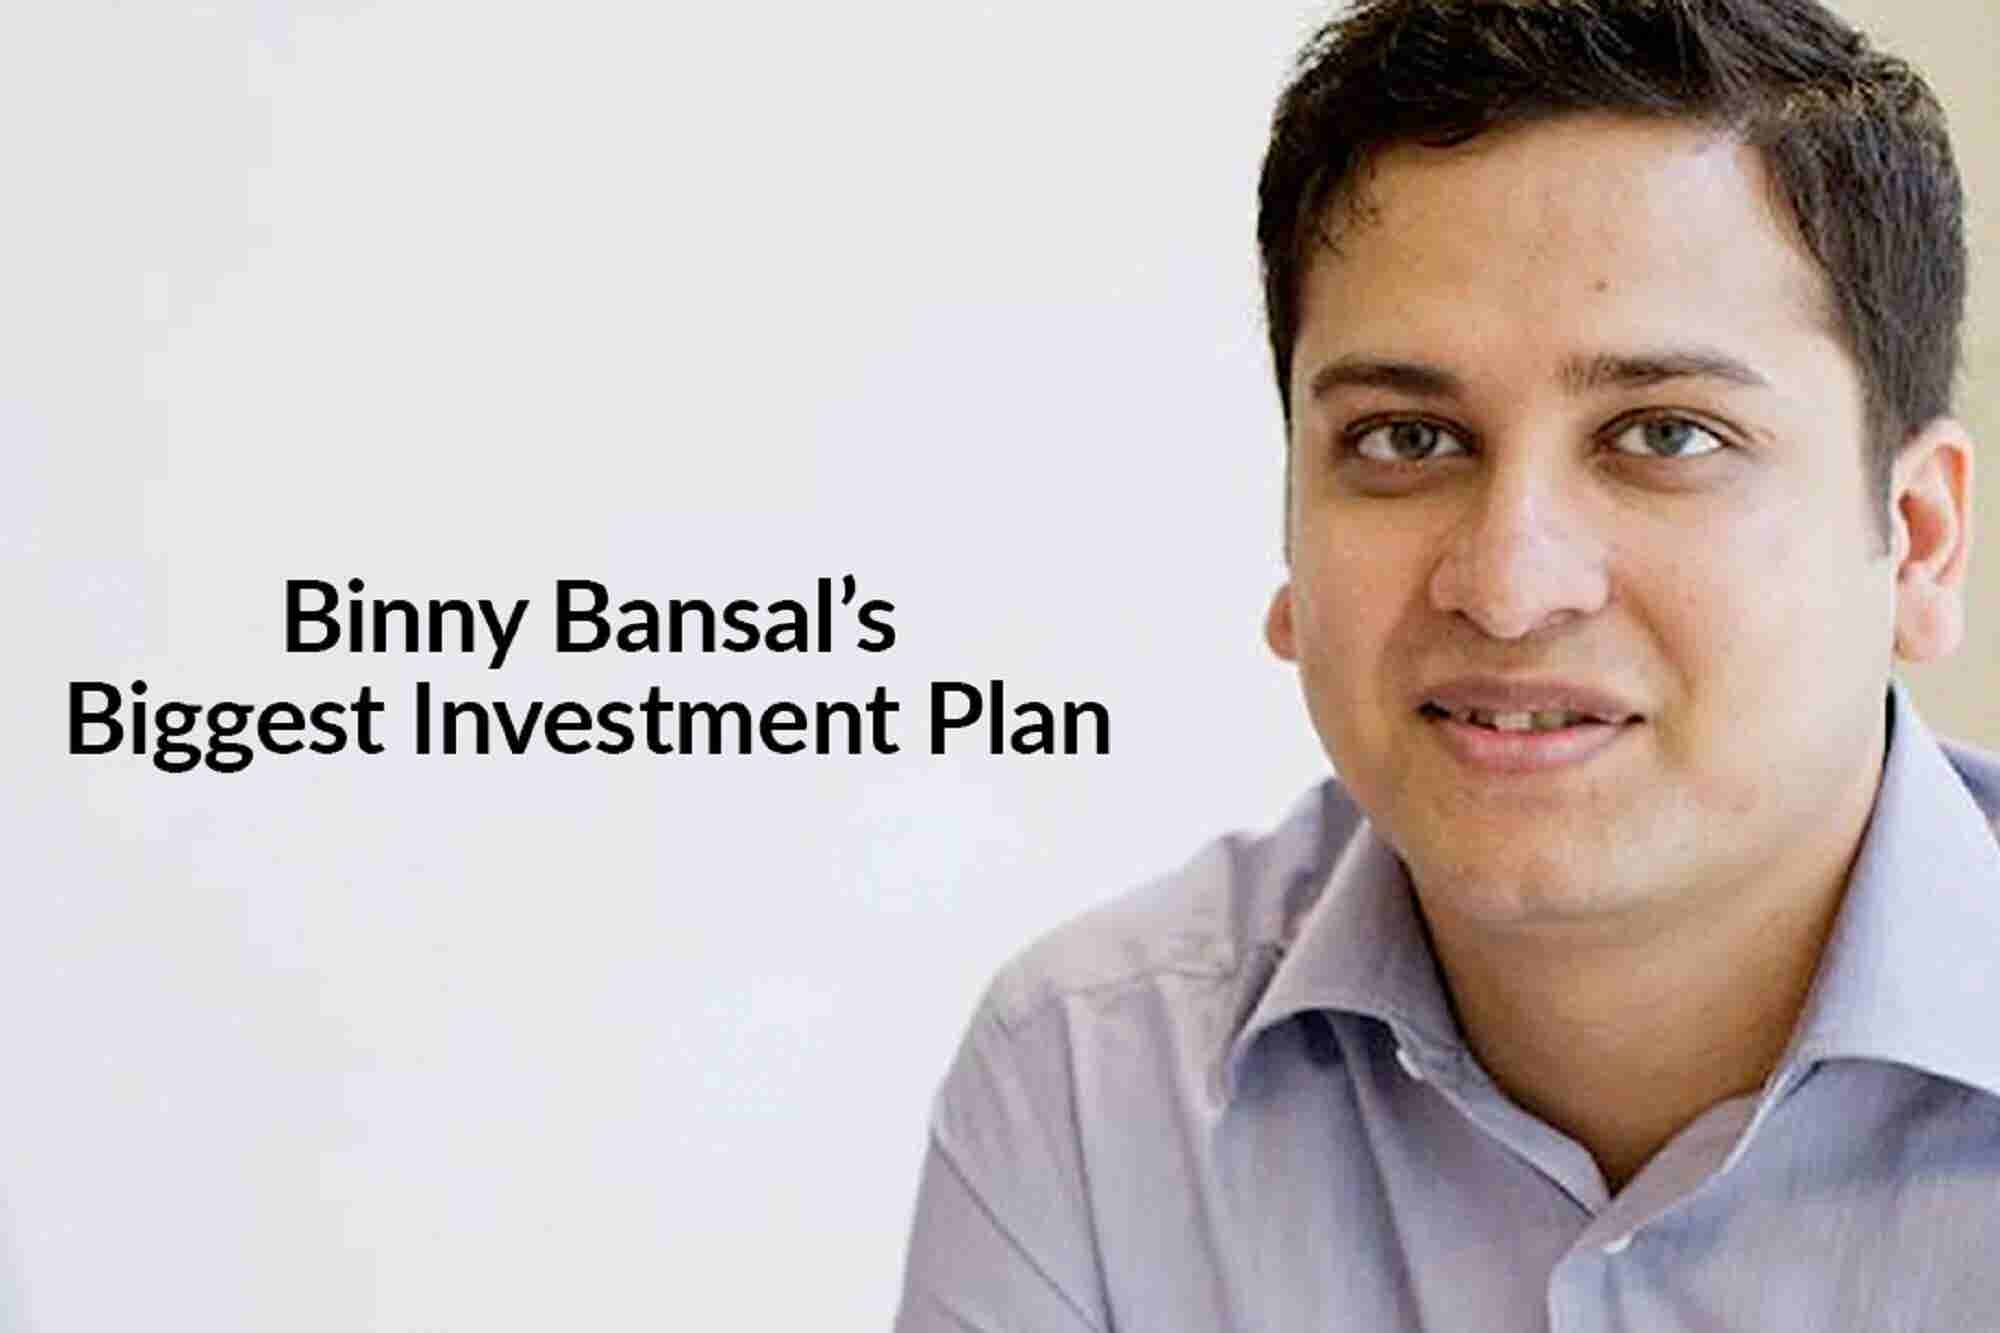 Week Wrap Up: From Anand Mahindra Proud Tweet to Binny Bansal's New Plan, Here's All You Need to Know